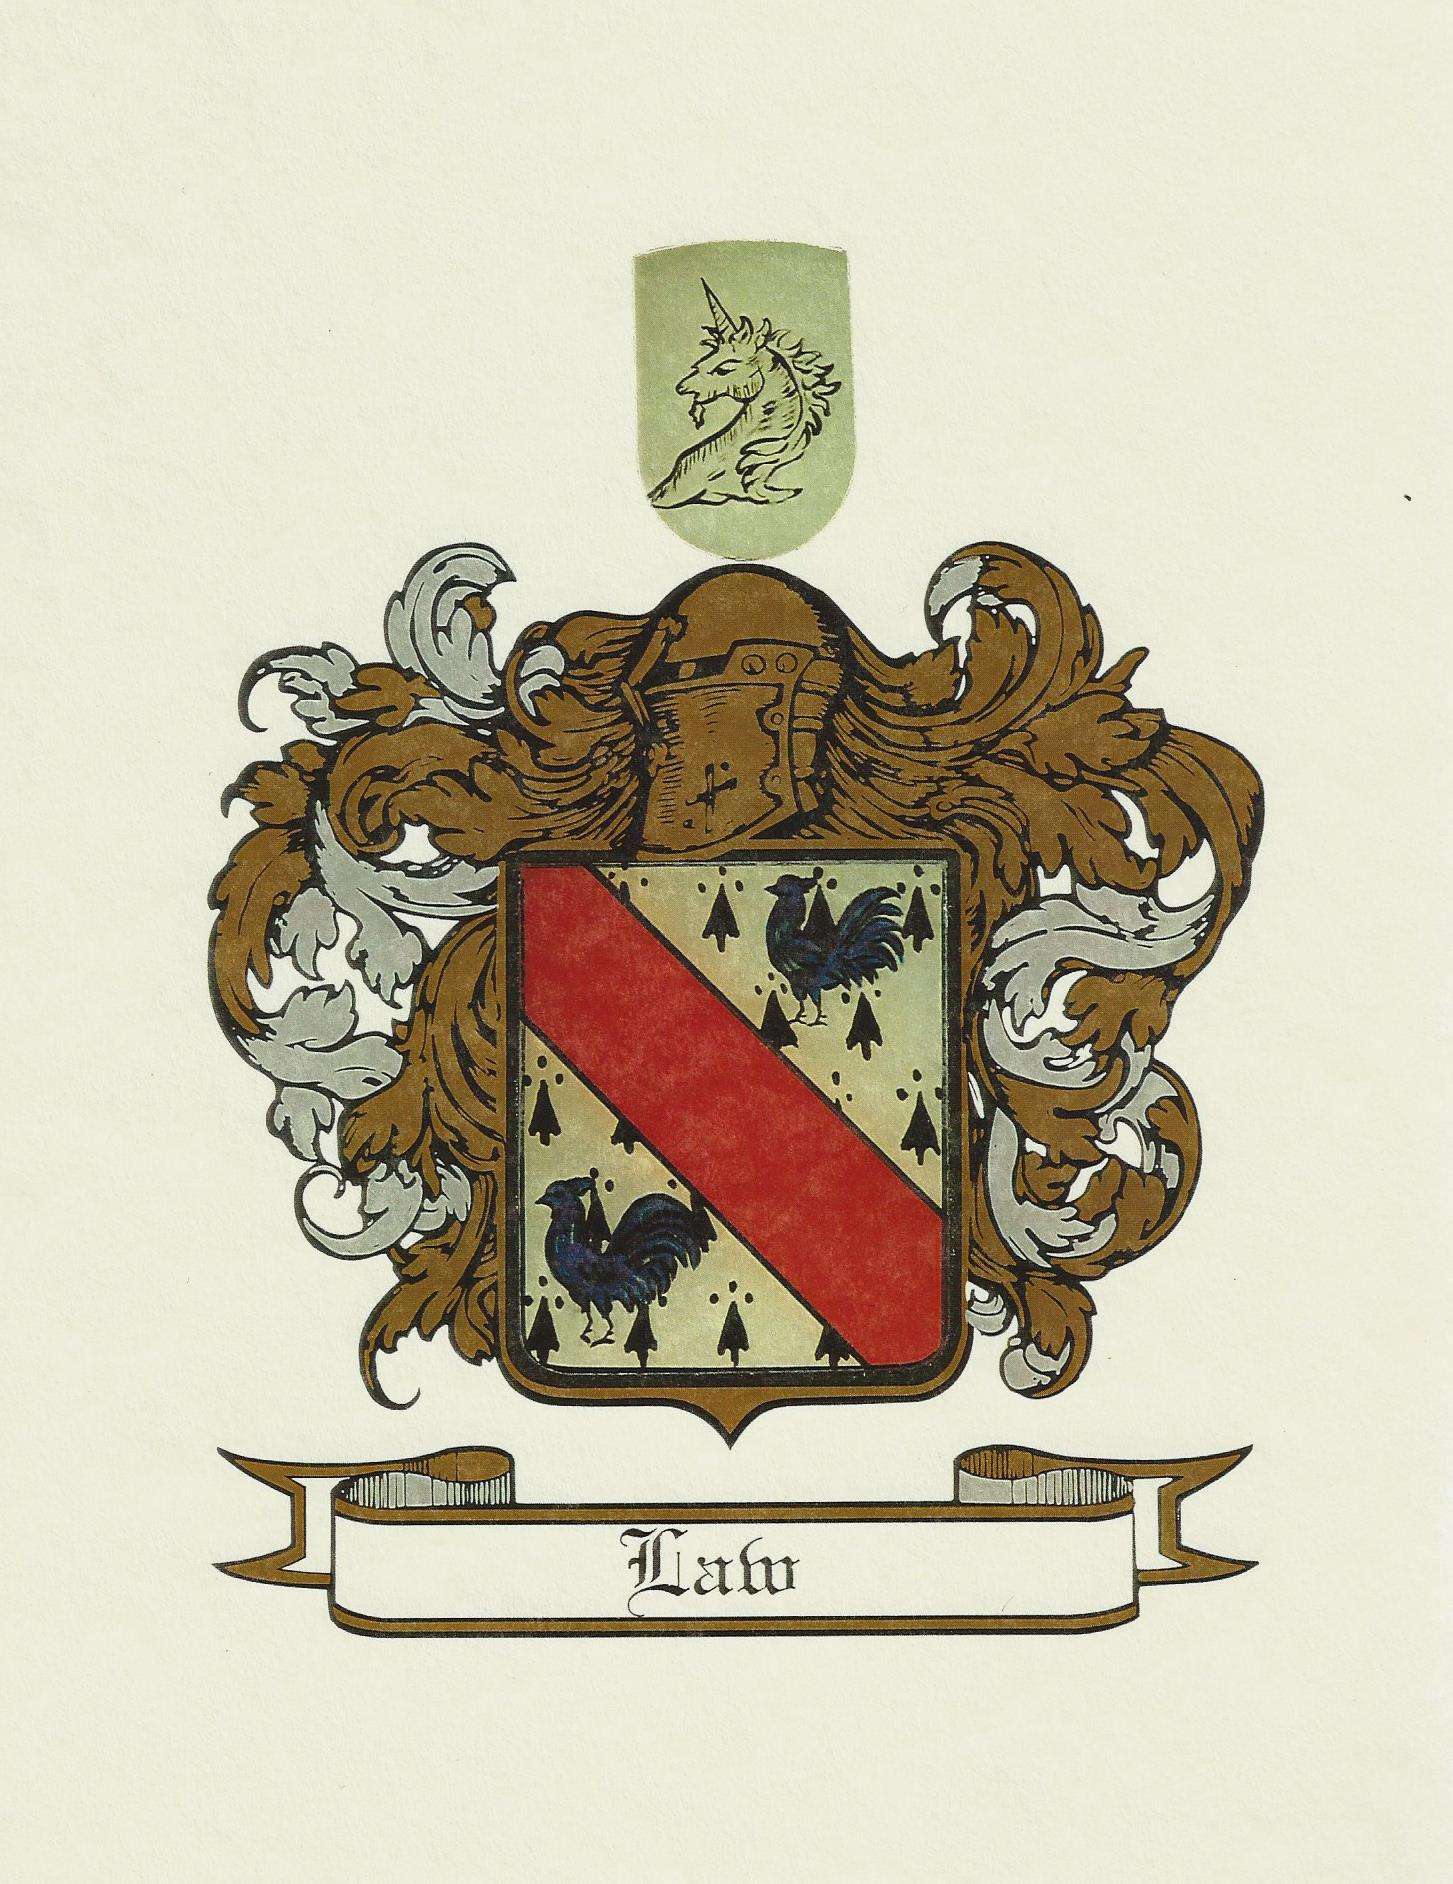 The Law Family Crest and Coat of Arms